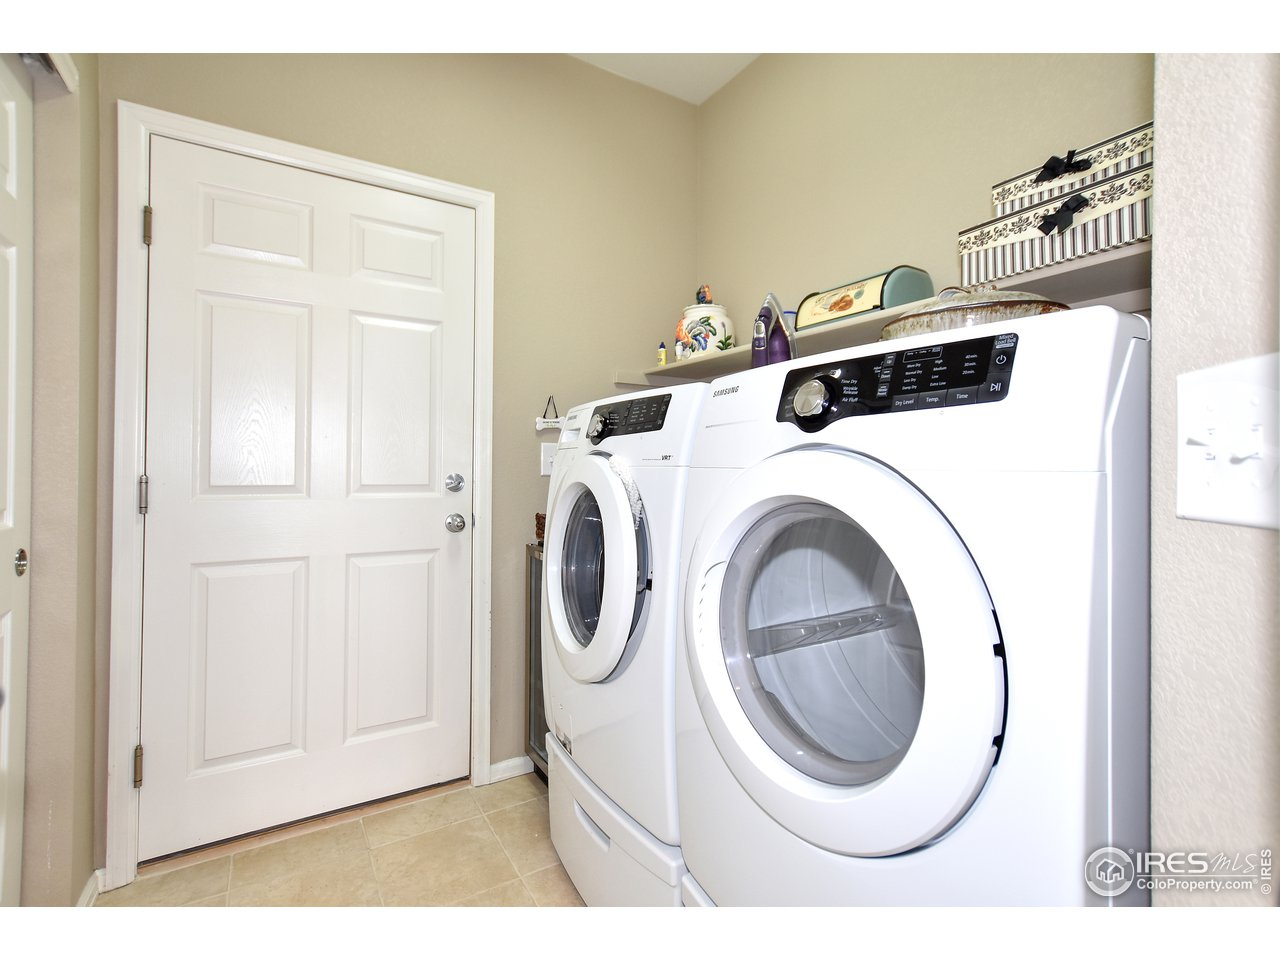 Laundry room off kitchen comes with washer/dryer!